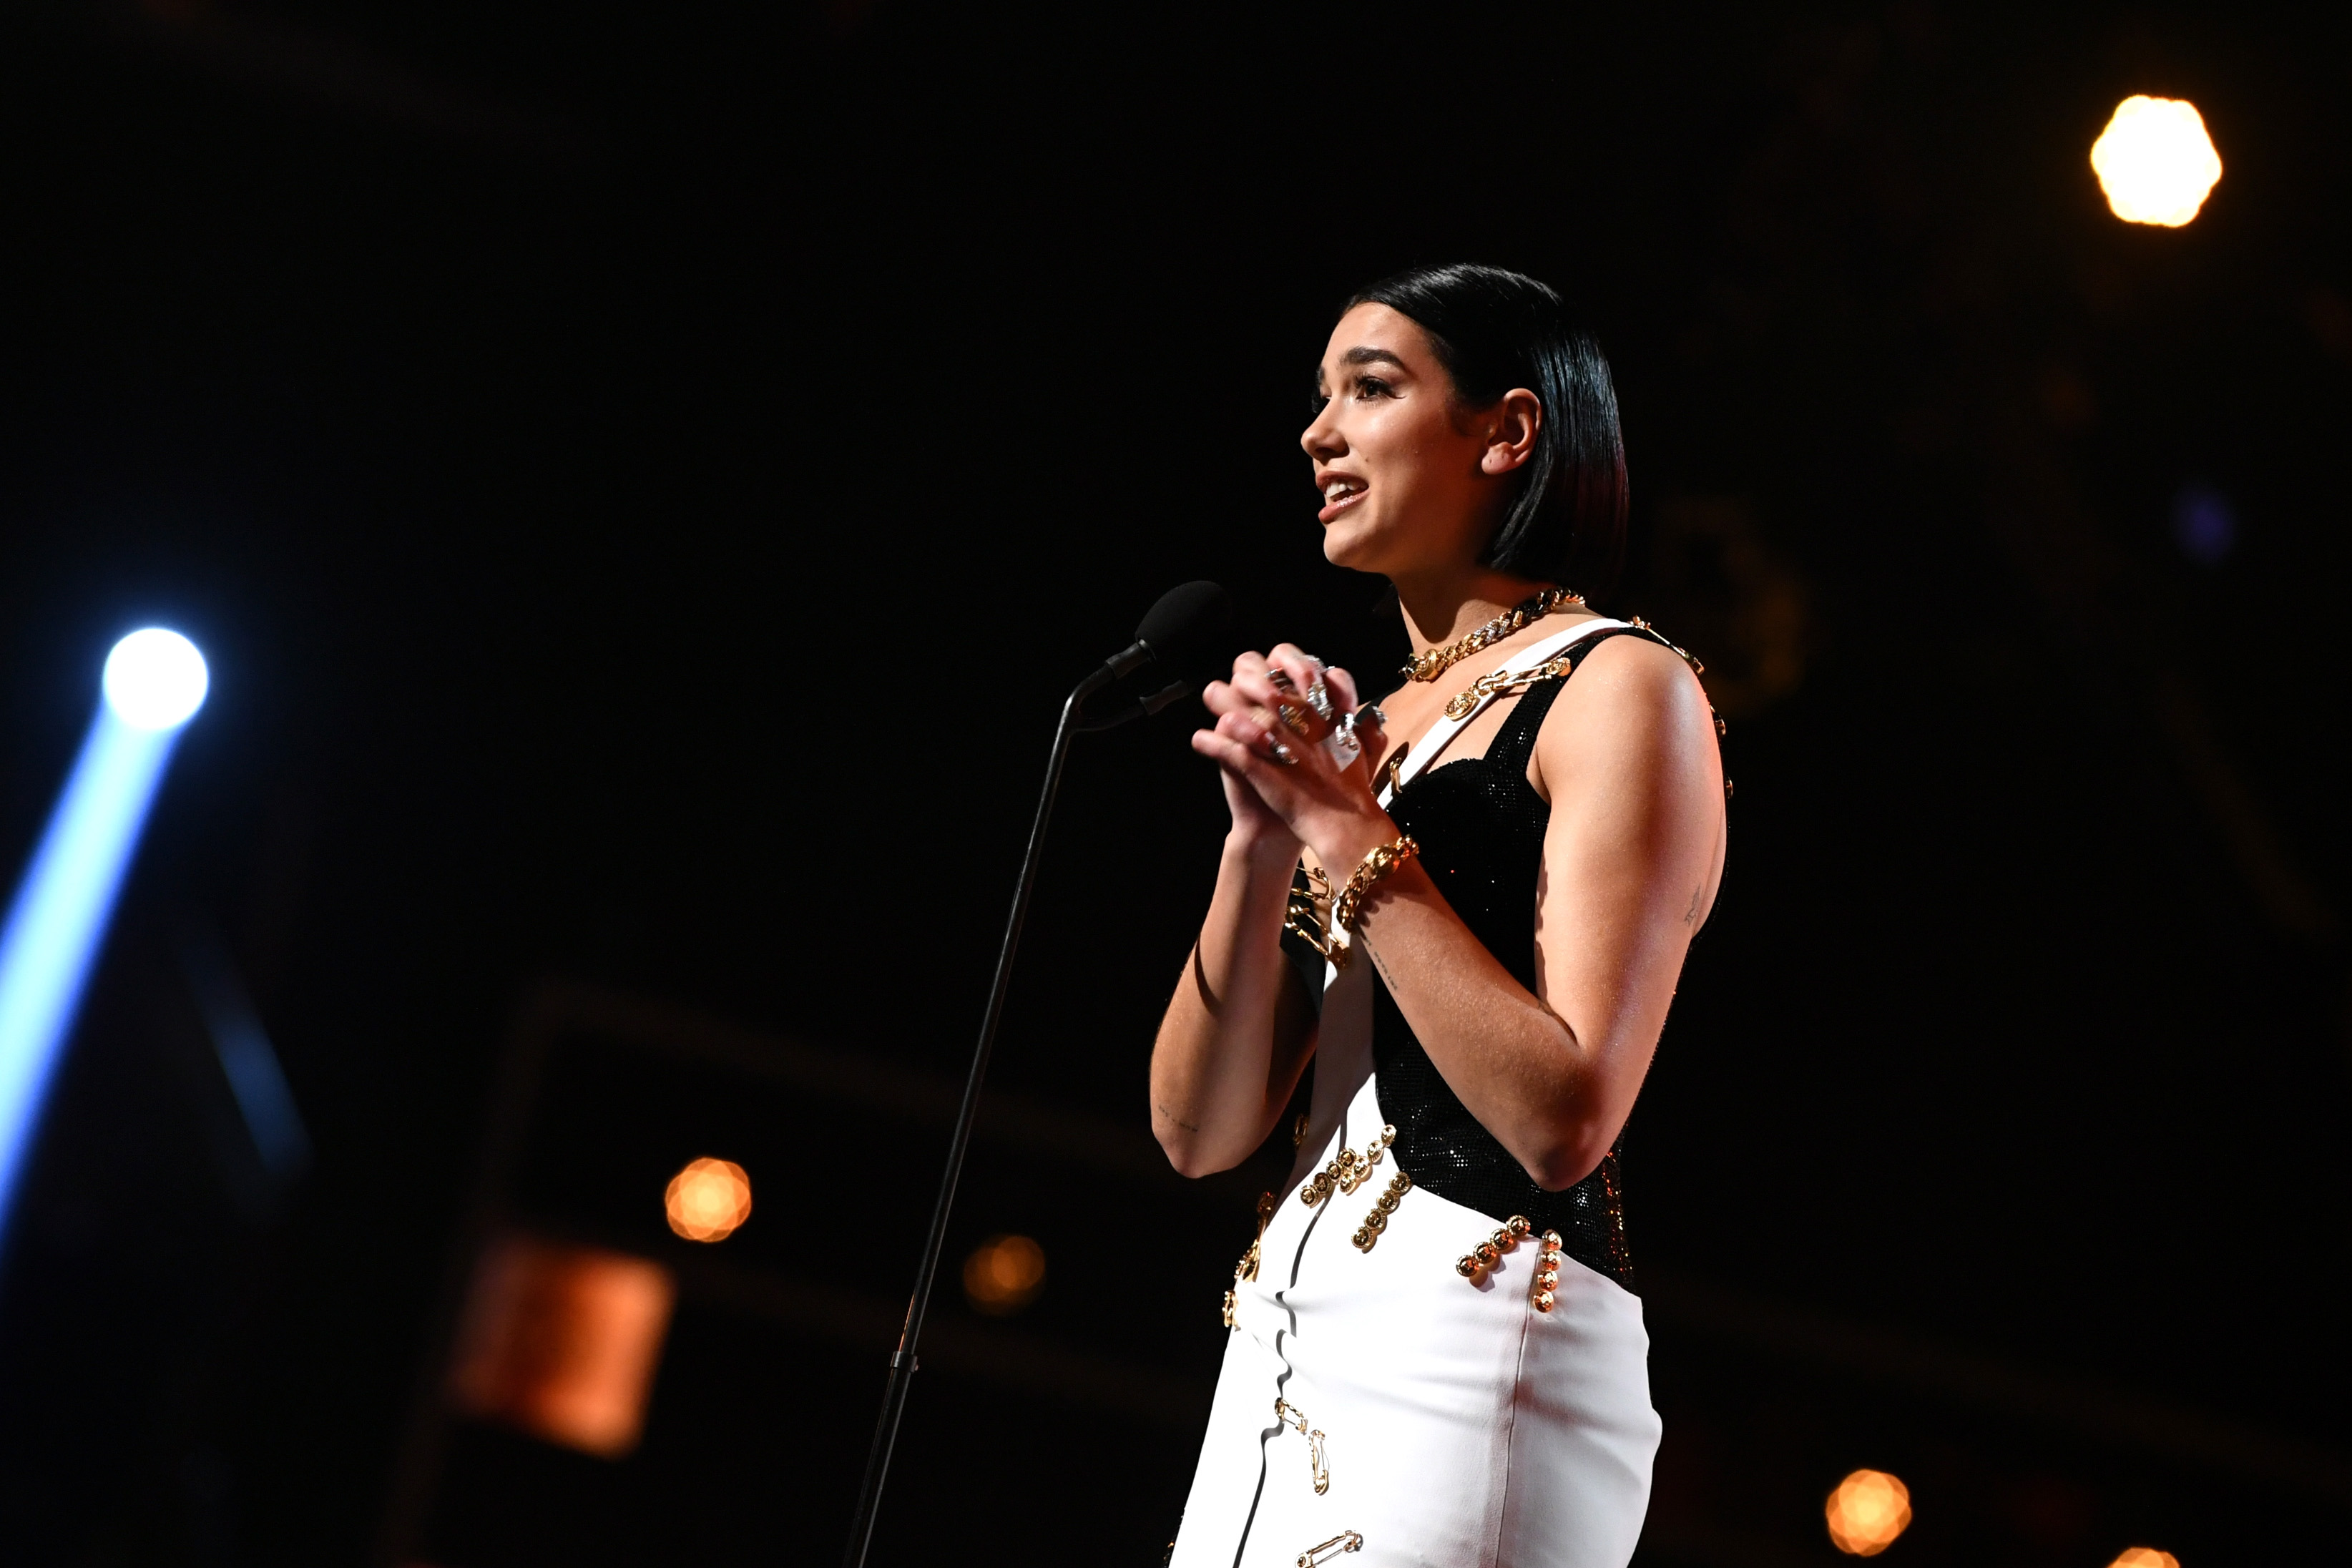 Dua Lipa, who has come out in support of the Brunei boycott, speaks onstage during the 61st Annual GRAMMY Awards at Staples Center on February 10, 2019 in Los Angeles, California.